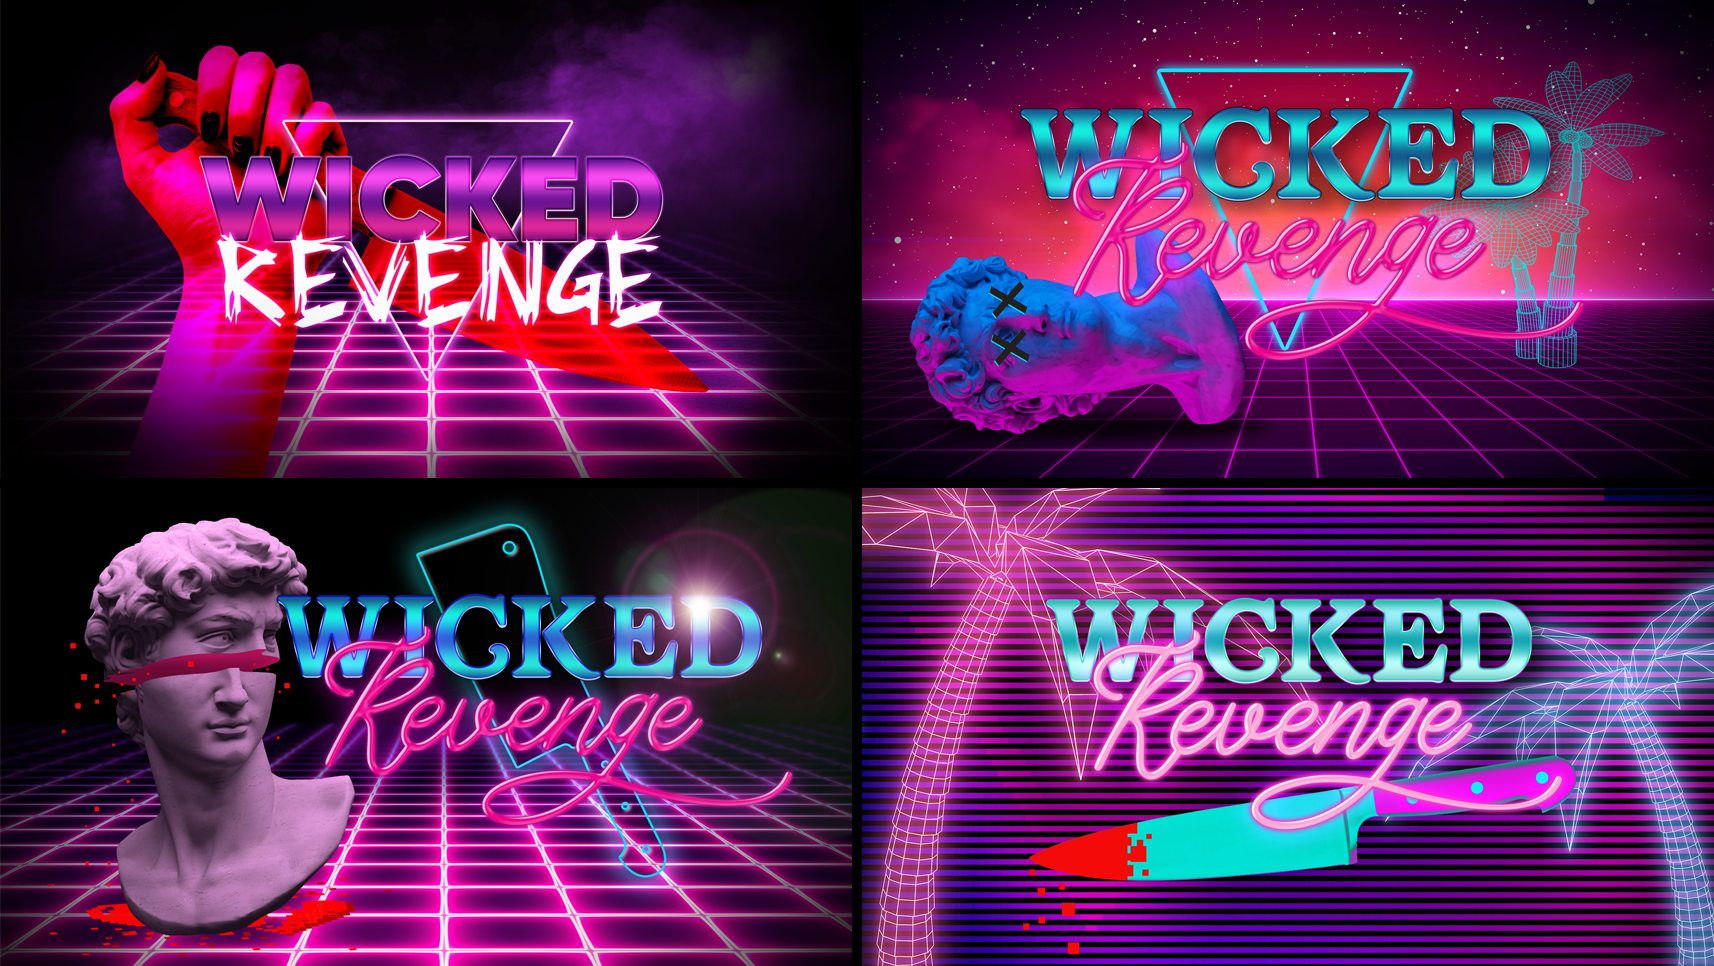 Wicked Revenge Marathon Vaporwave exploration